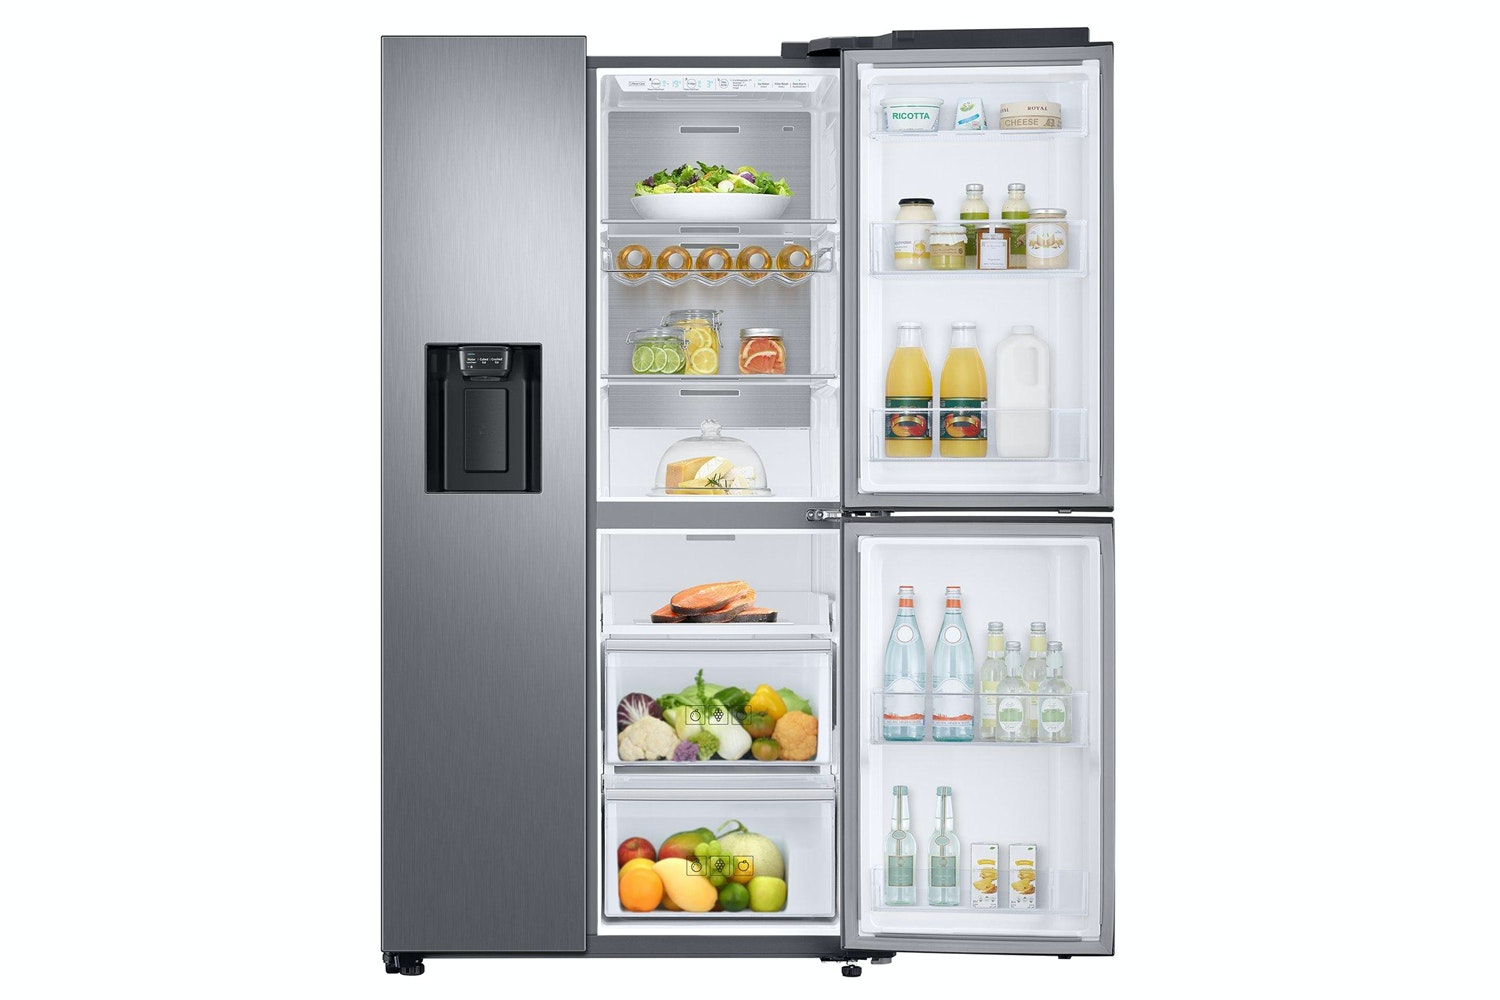 Samsung American Fridge Freezer | RS68N8670S9/EU